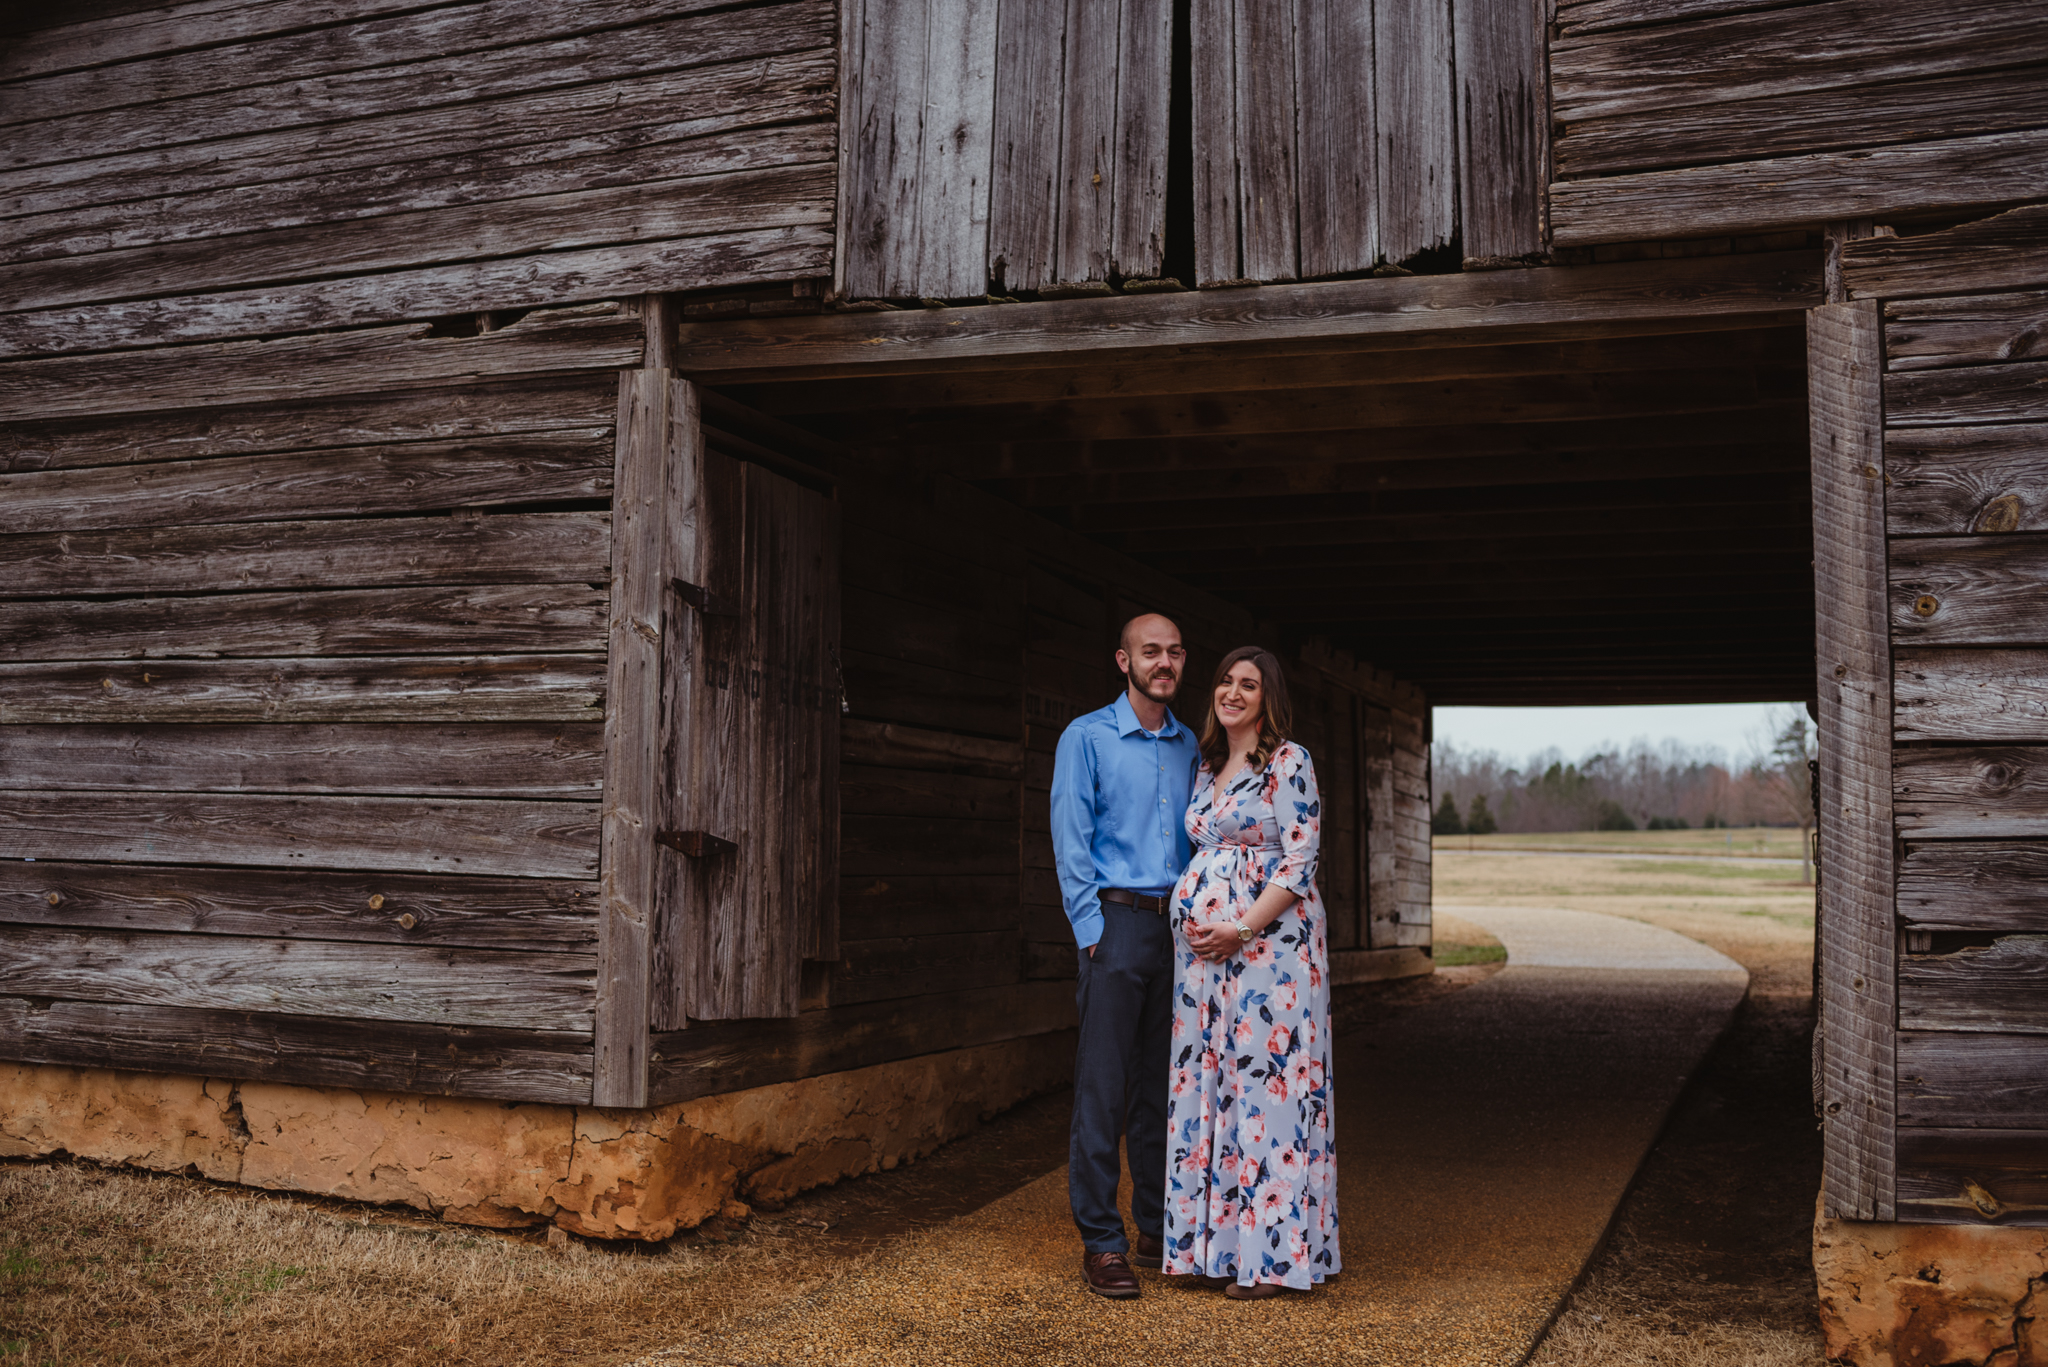 The parents to be stand under the old barn, picture taken by Rose Trail Images at Joyner Park in Wake Forest, NC.